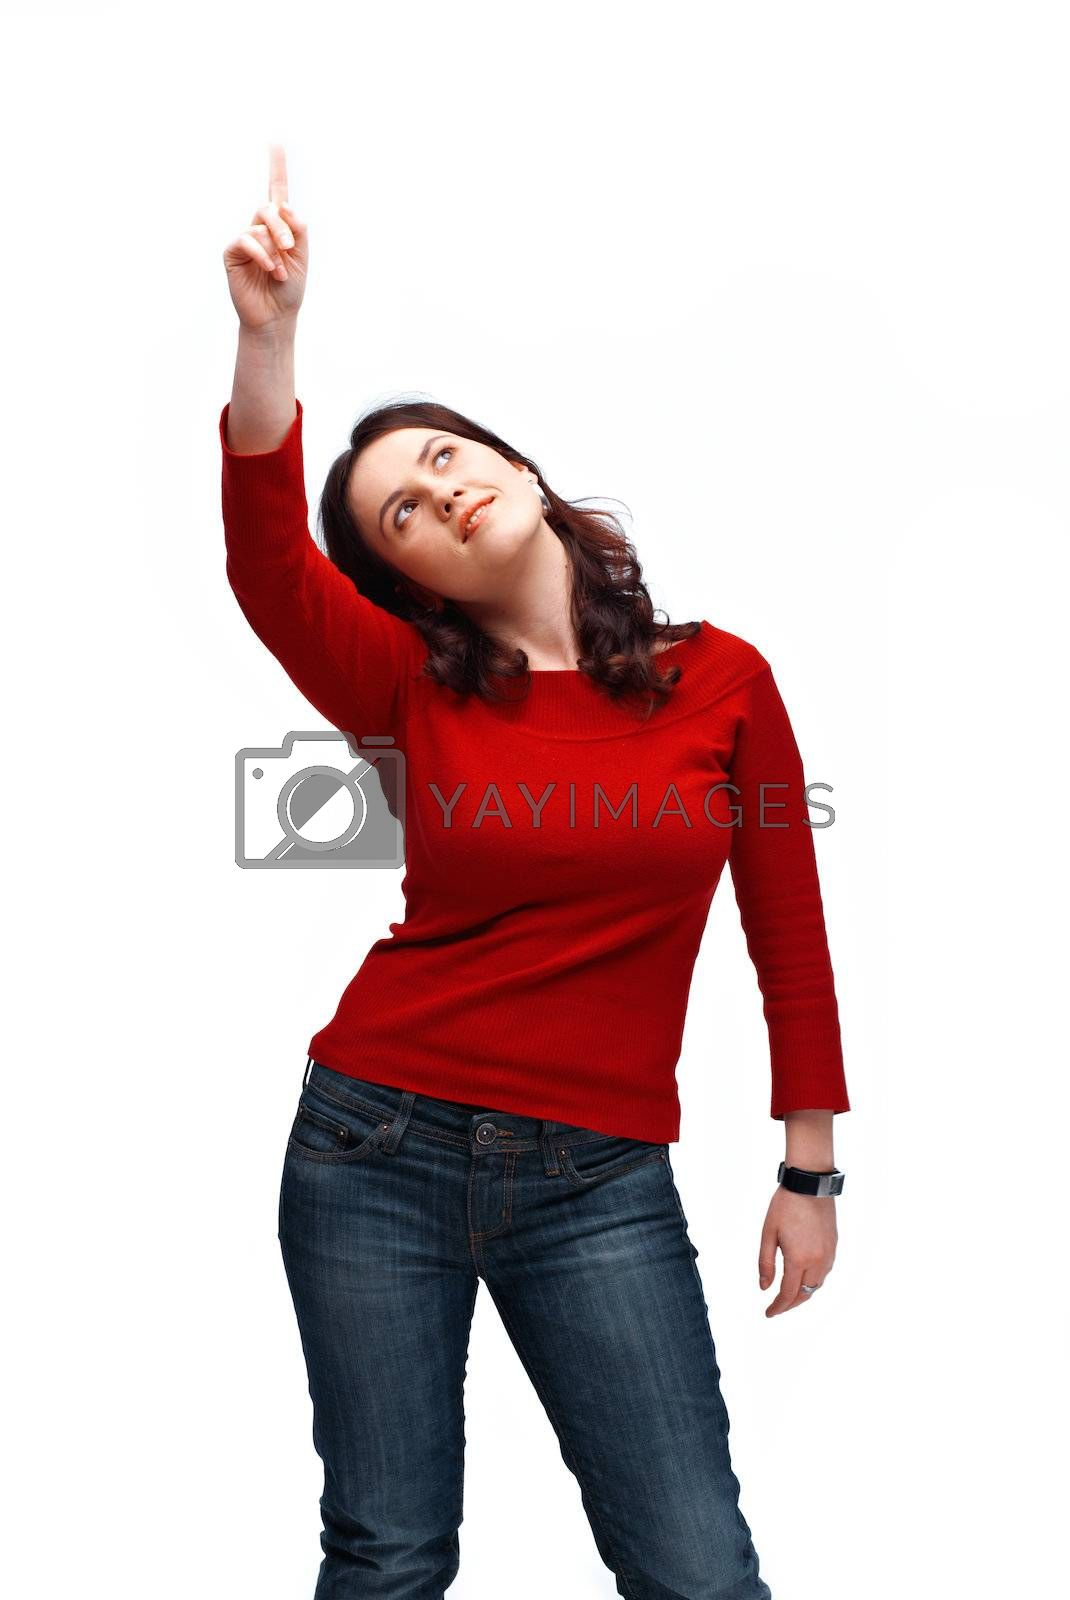 A portrait of a young girl pointing and looking at something up on white background